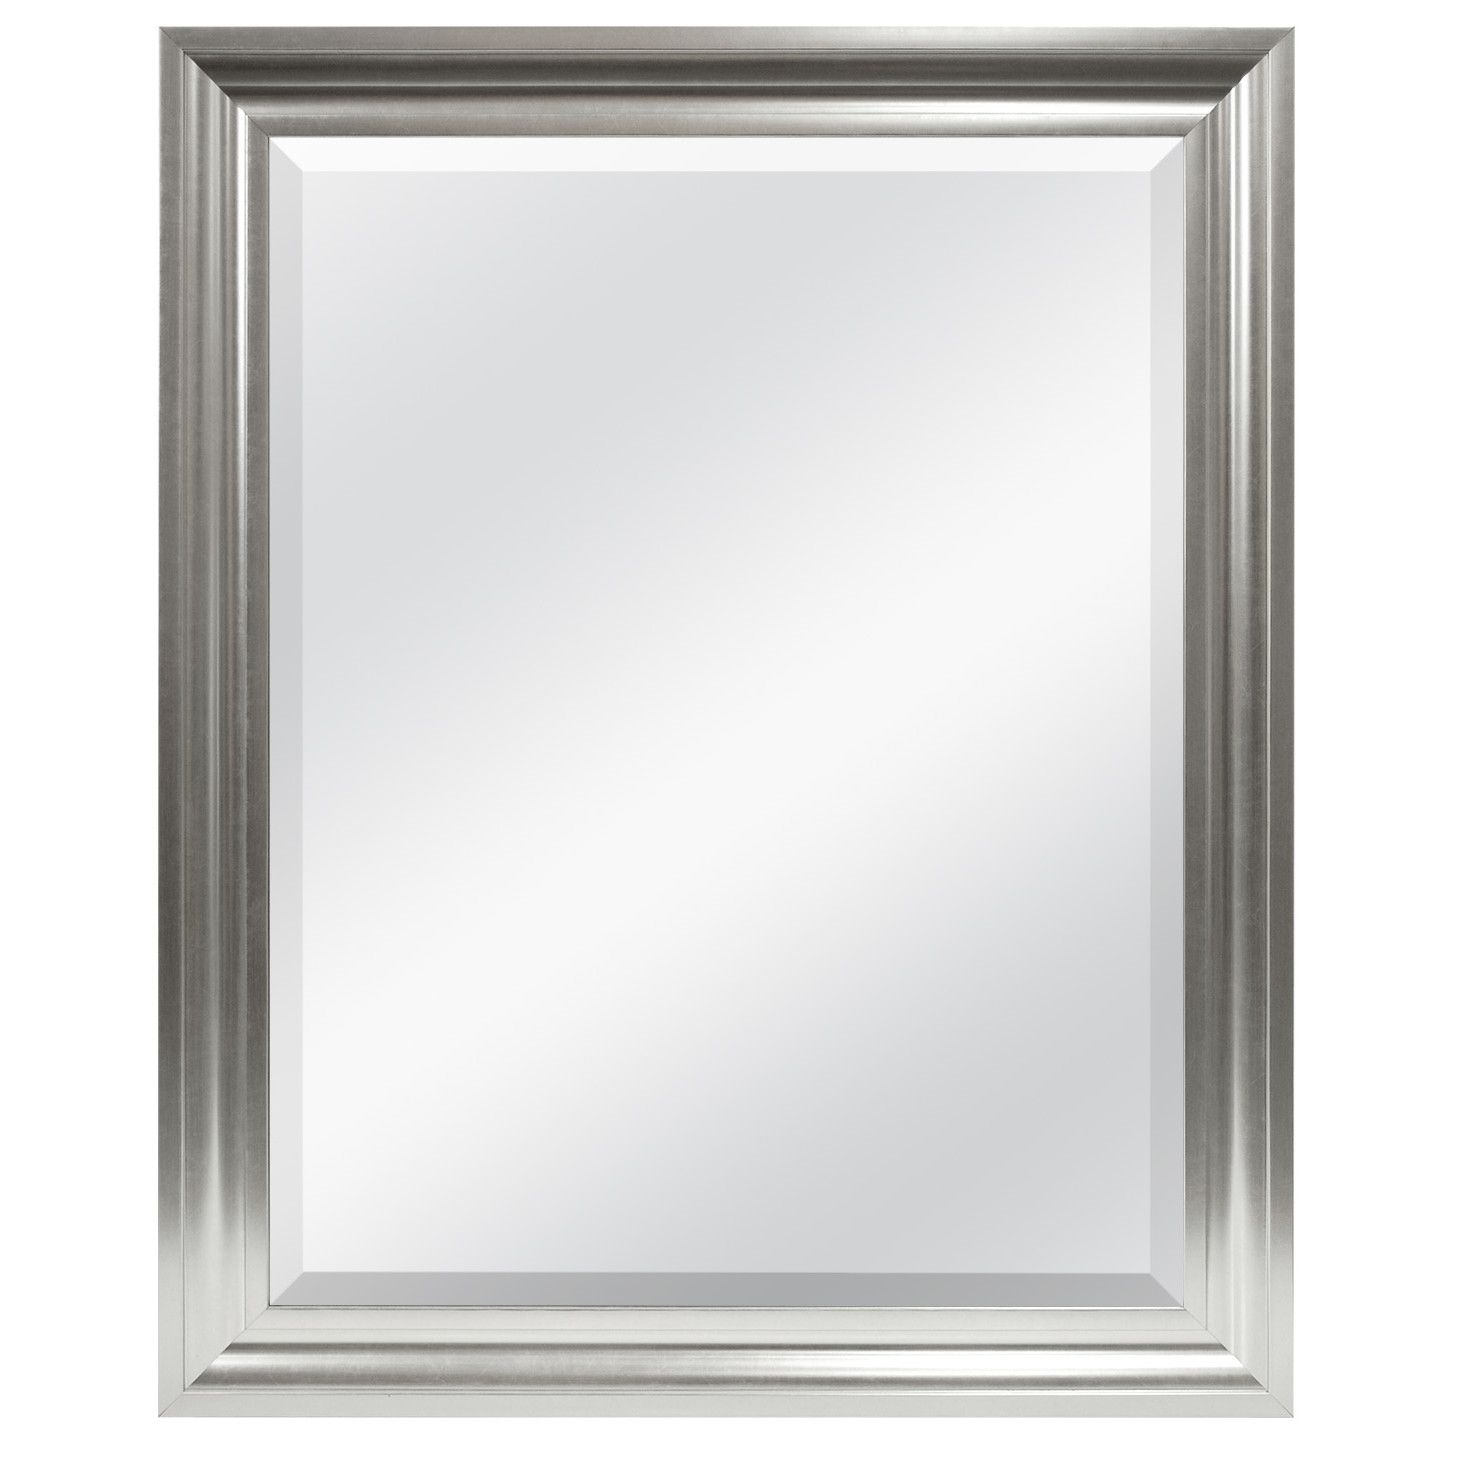 Rectangle Plastic Beveled Wall Mirror | Mirrors | Beveled For Rectangle Plastic Beveled Wall Mirrors (View 2 of 20)